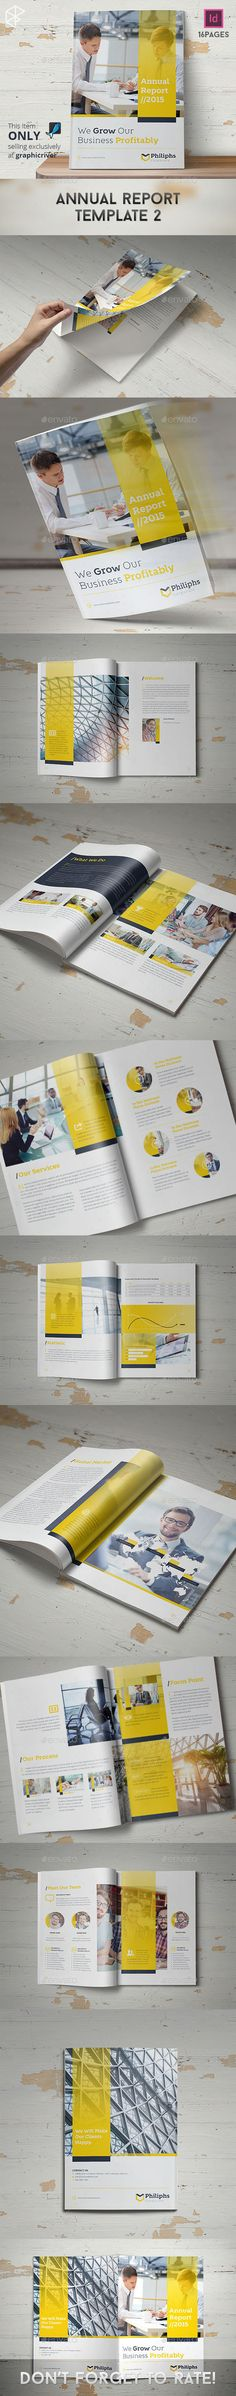 Annual Report-V339 Annual reports and Brochures - annual report template design